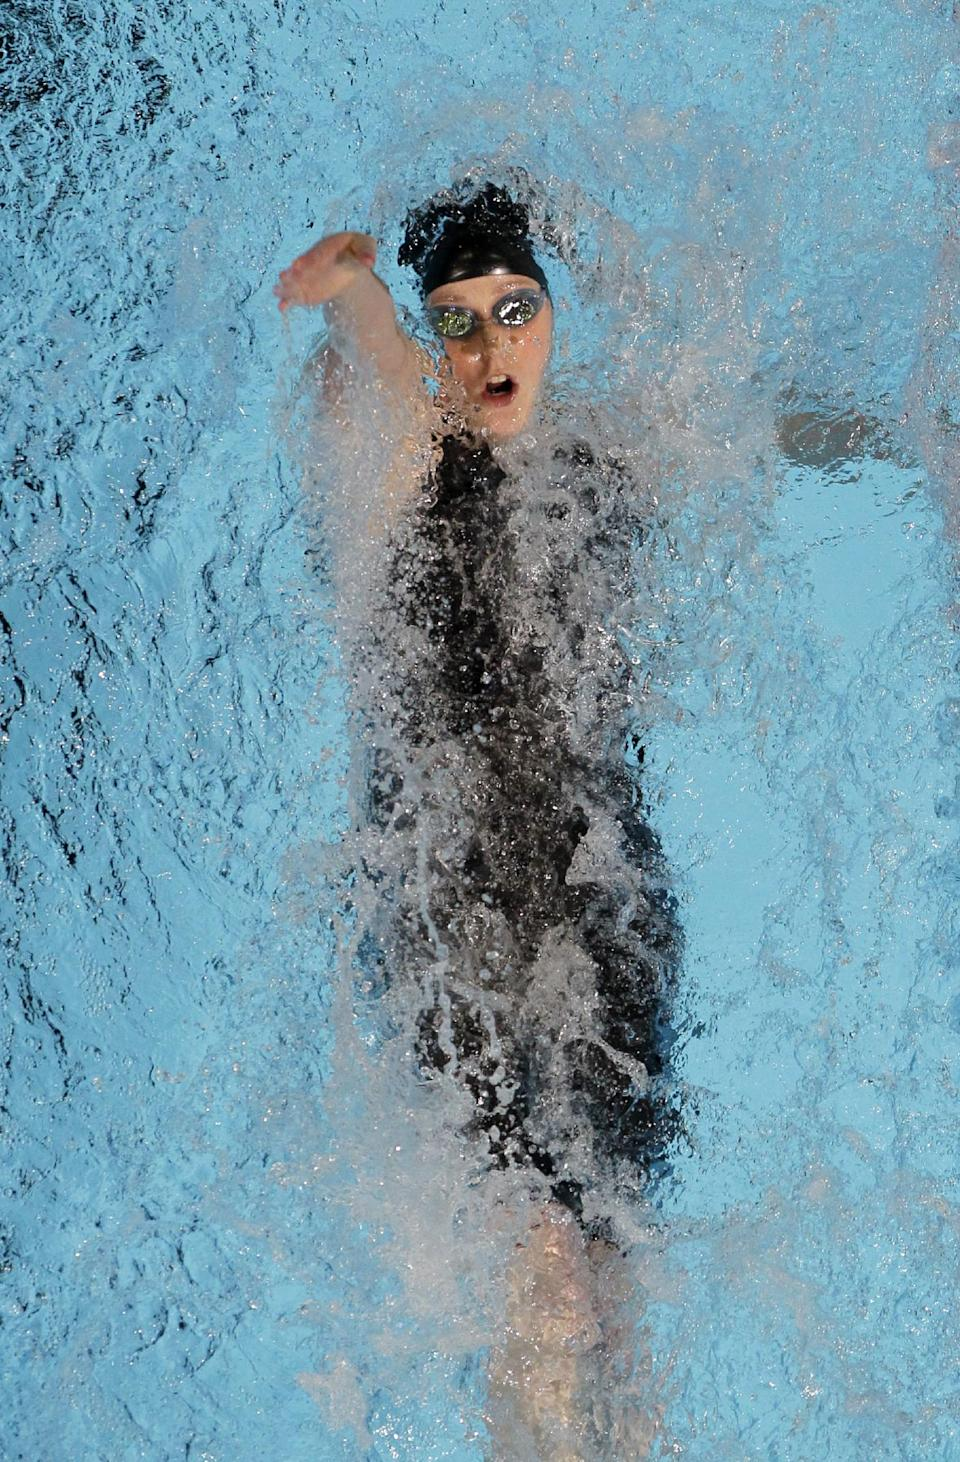 Missy Franklin swims in the women's 200-meter backstroke final at the U.S. Olympic swimming trials, Saturday, June 30, 2012, in Omaha, Neb. (AP Photo/Nati Harnik)